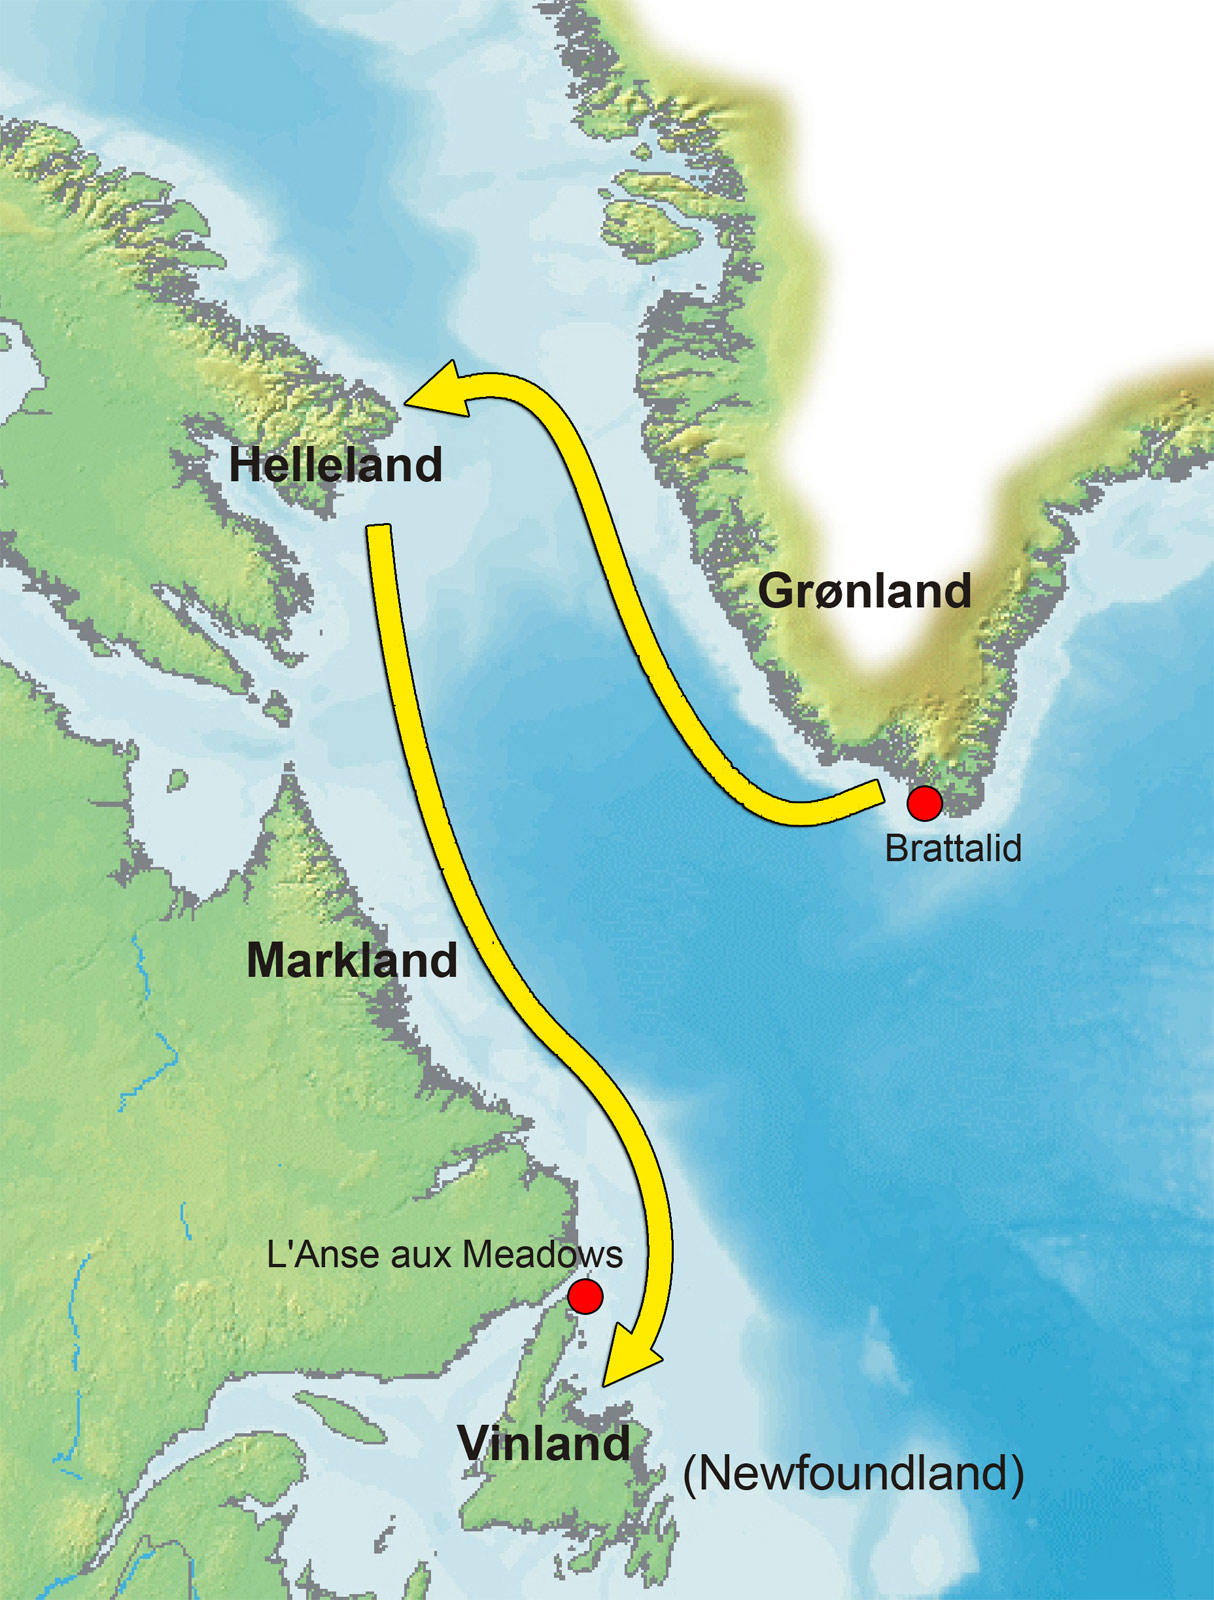 http://upload.wikimedia.org/wikipedia/commons/0/04/Vinland-travel.jpg